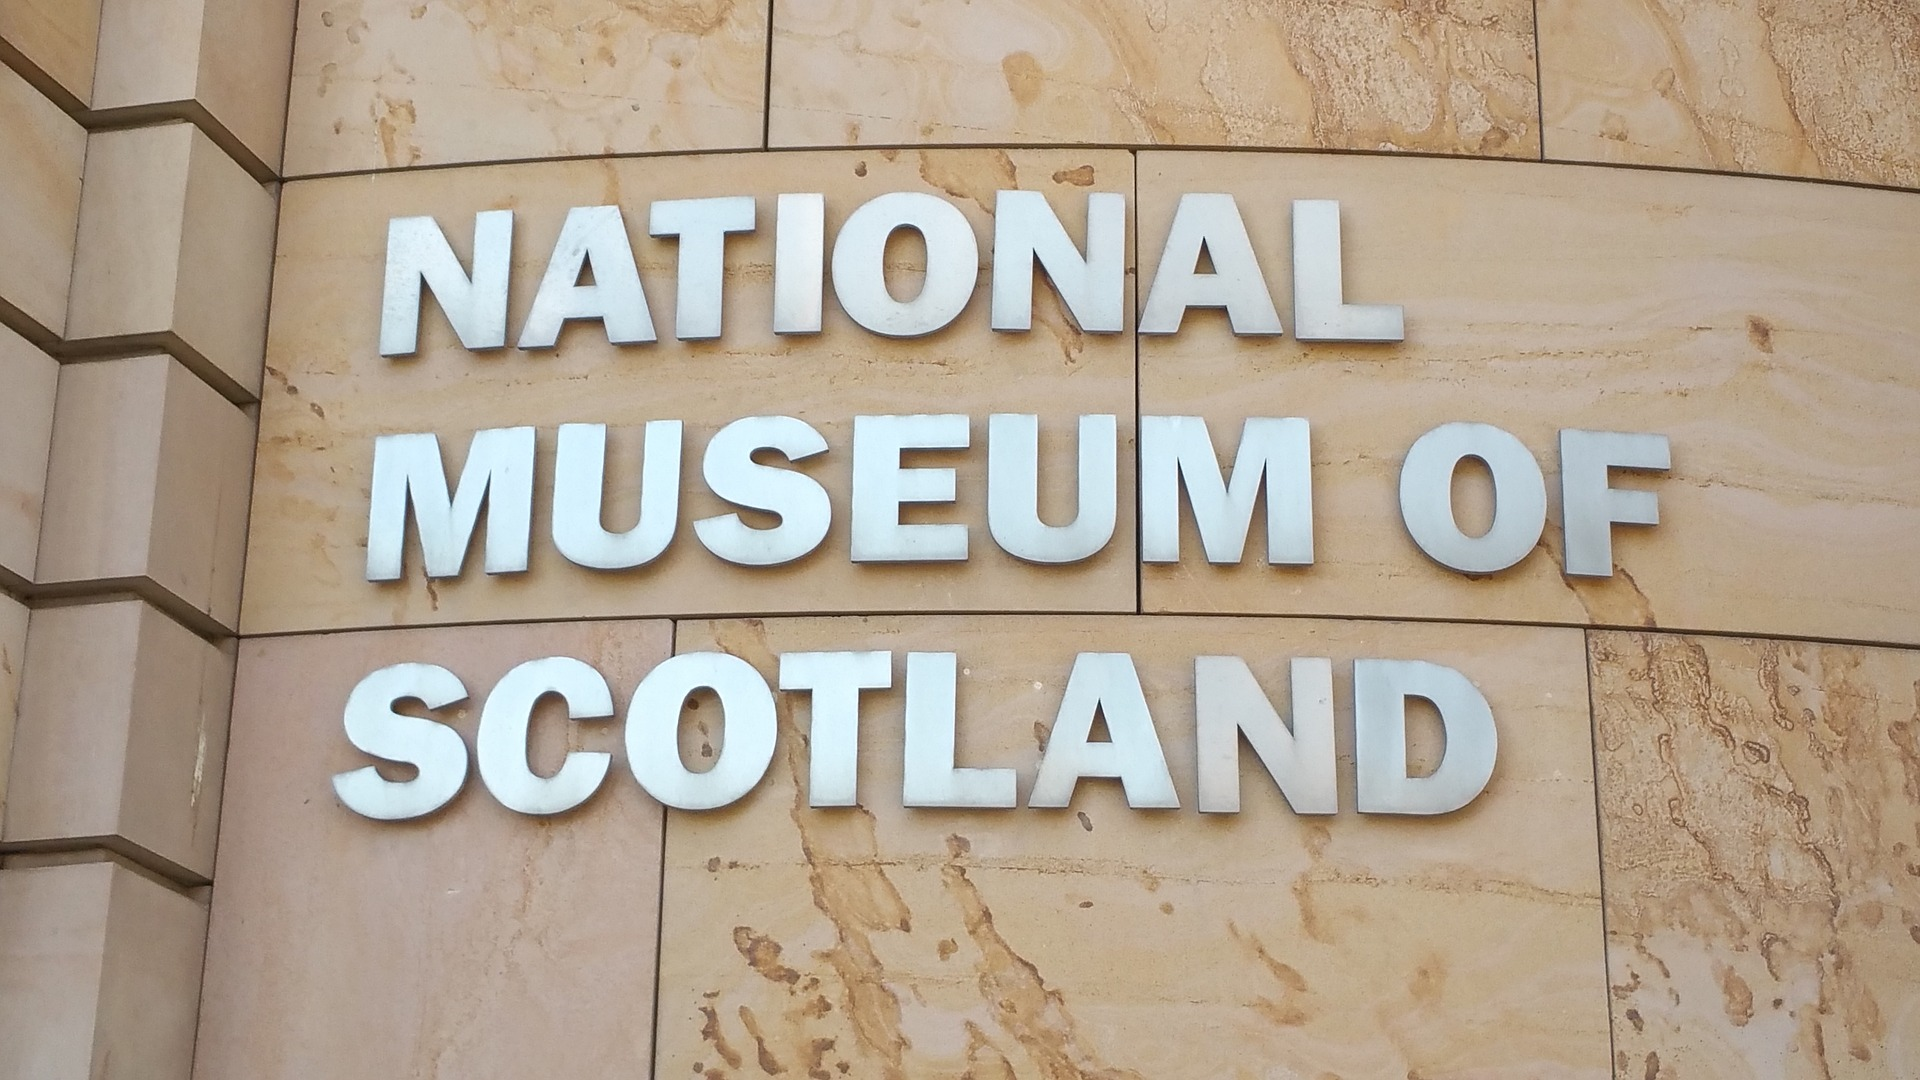 National-museum-of-scotland